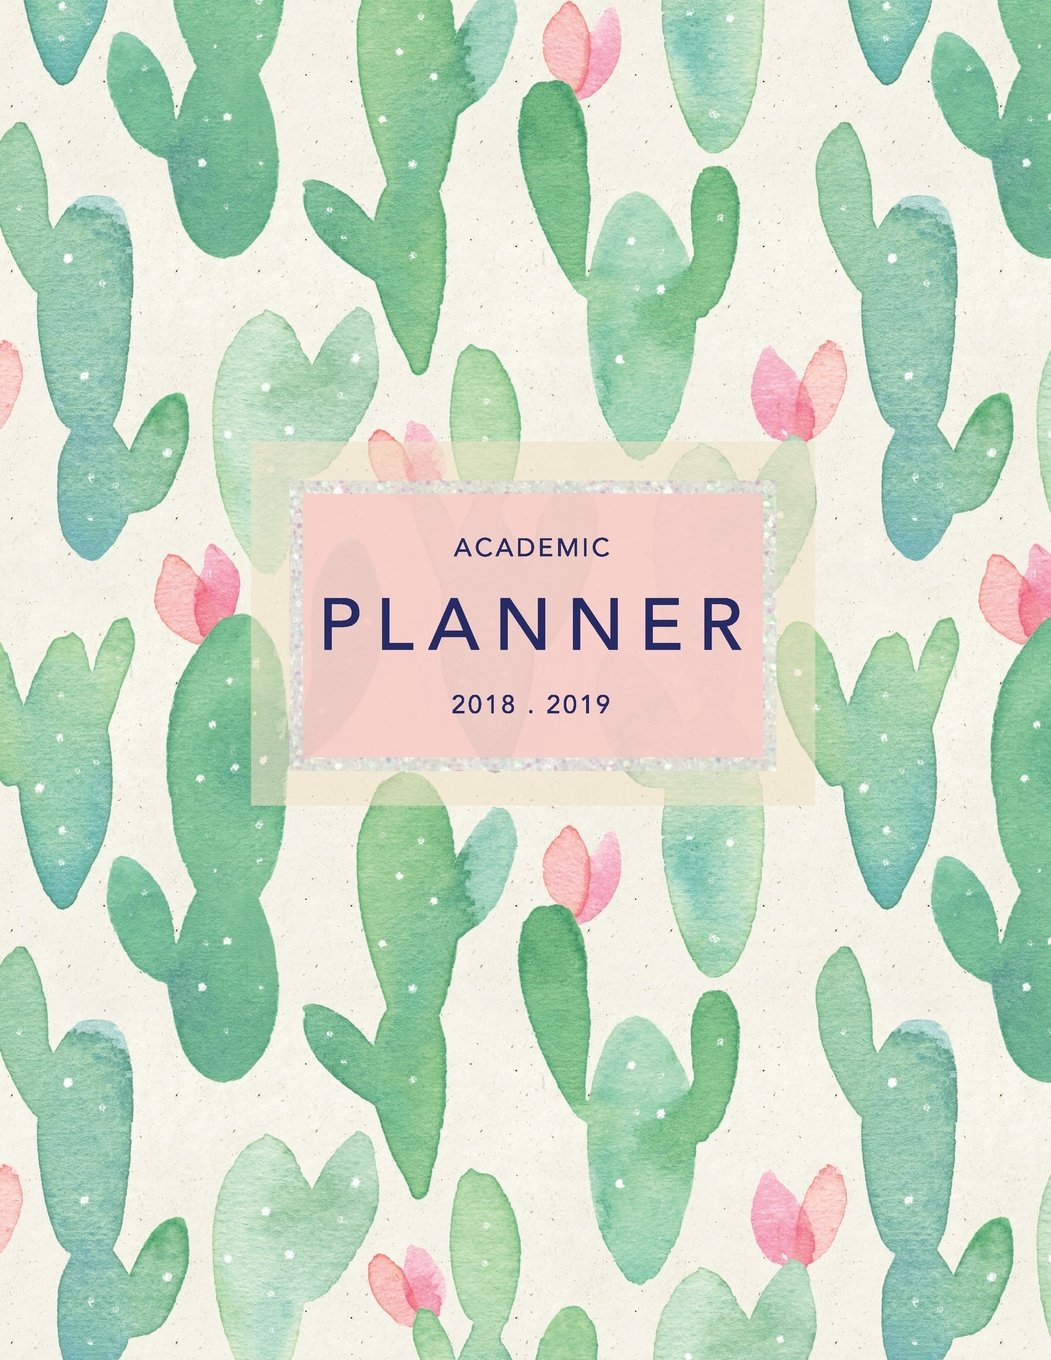 Academic Planner 2018-19: Cactus Design | Weekly + Monthly Views | To Do Lists Goal-Setting Class Schedules + More (August 2018 - July 2019) (2018-2019 Student Planners Band 3)